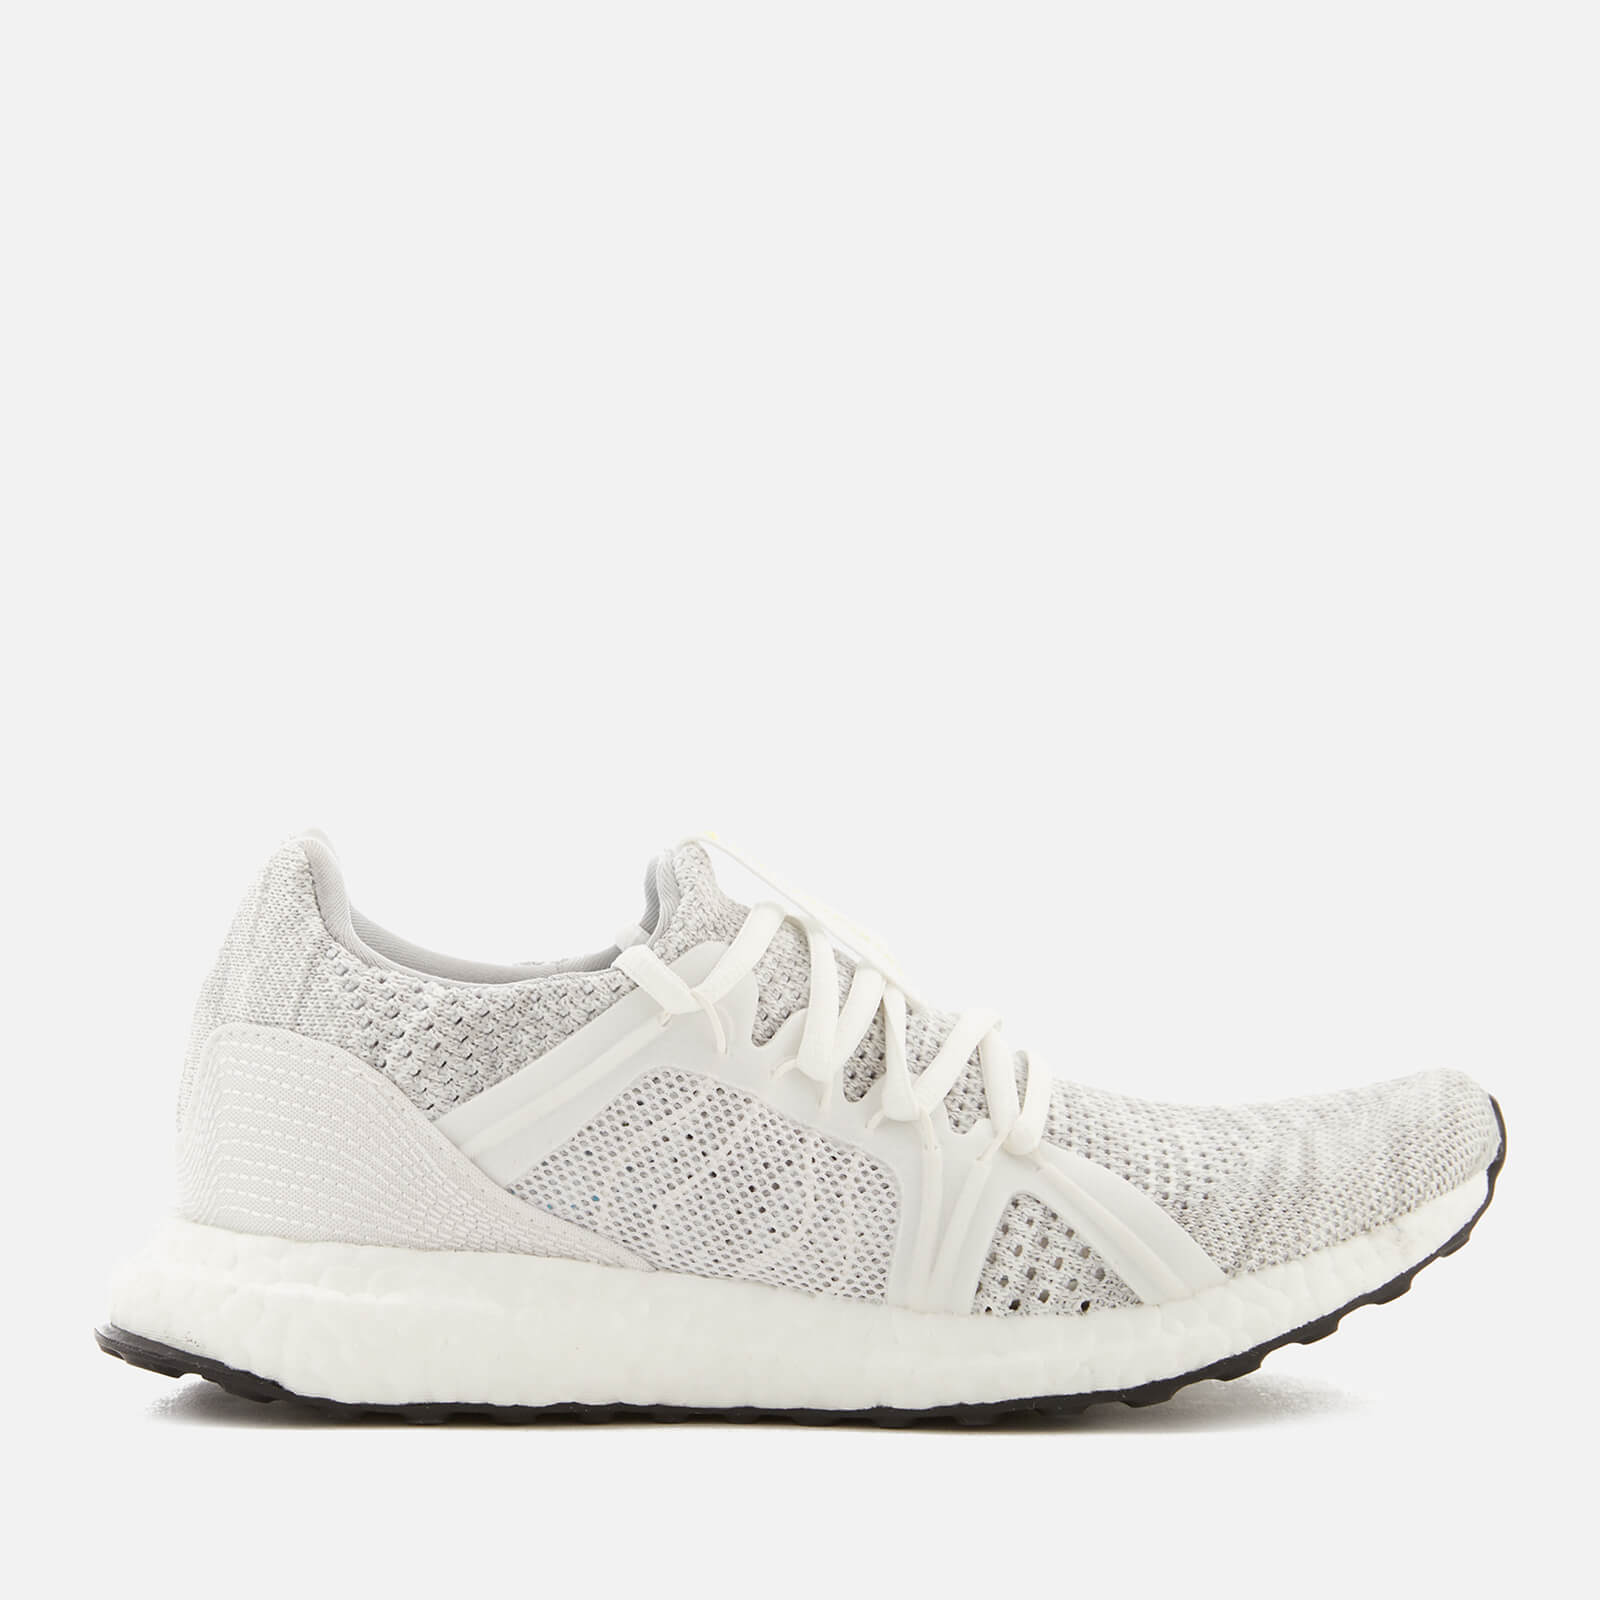 newest cfaf4 f35b1 adidas by Stella McCartney Women s Ultraboost Parley Trainers - Stone Core  White Mirror Blue - Free UK Delivery over £50